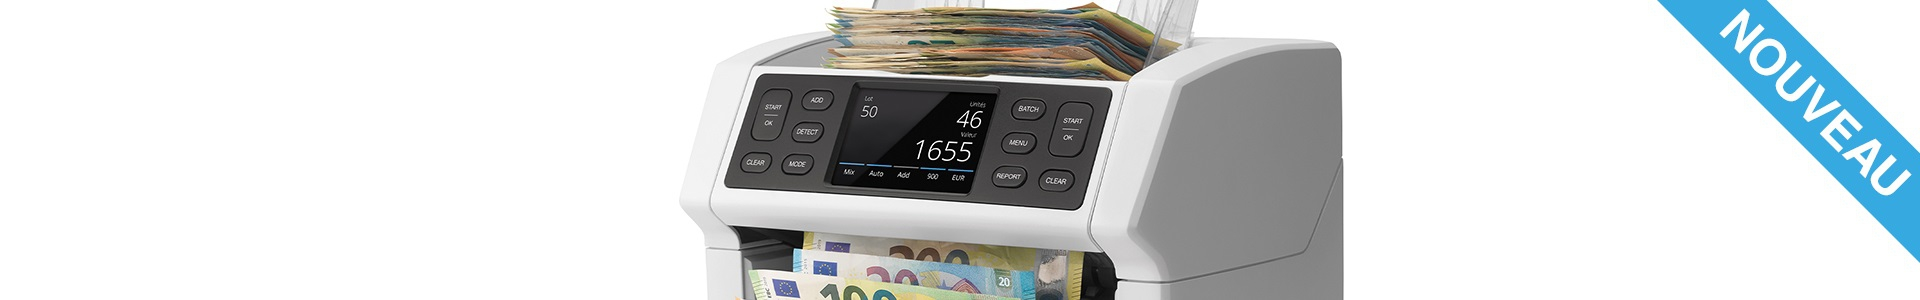 Banknote Counters 2